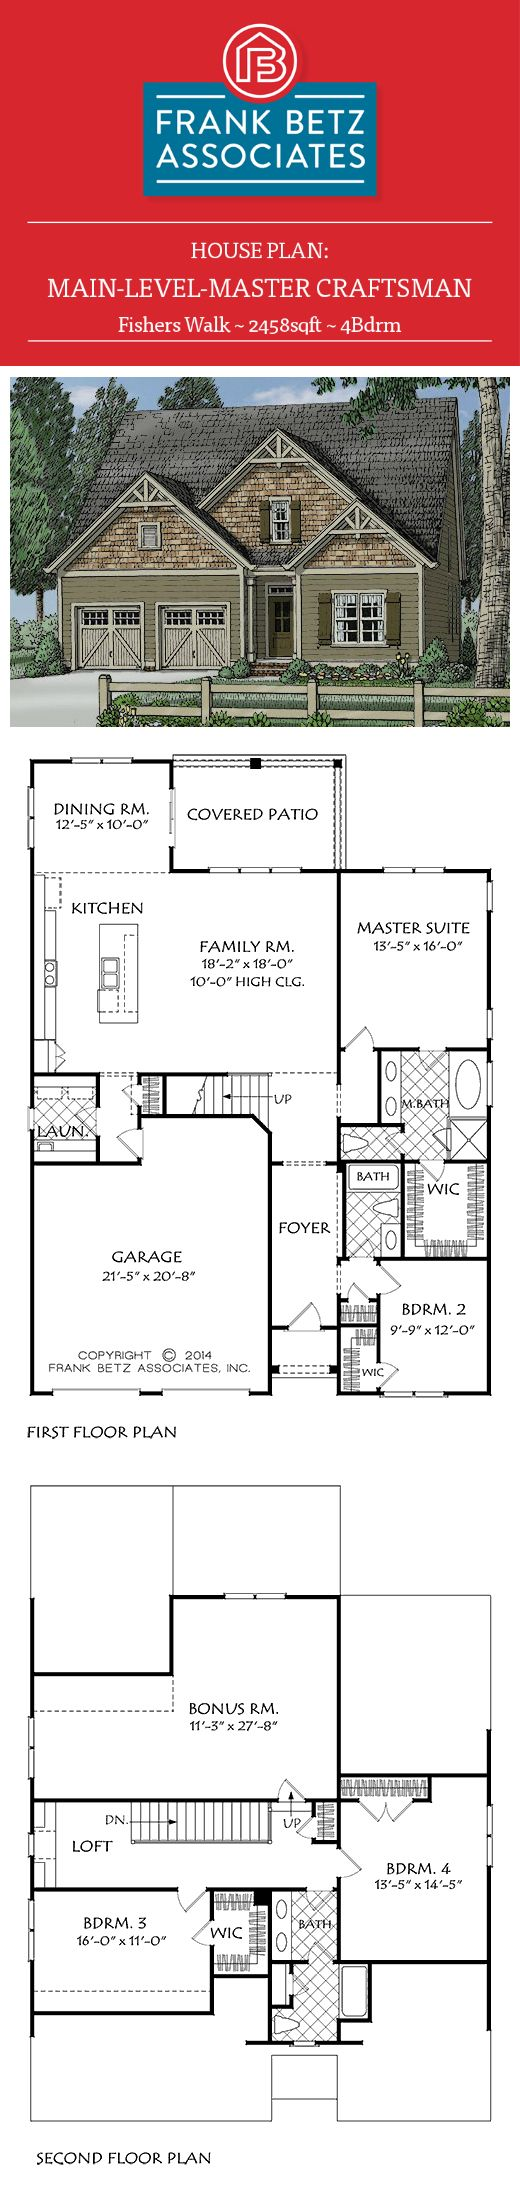 299 best house floor plans for downsizing images on pinterest 299 best house floor plans for downsizing images on pinterest house floor plans small house plans and dream house plans